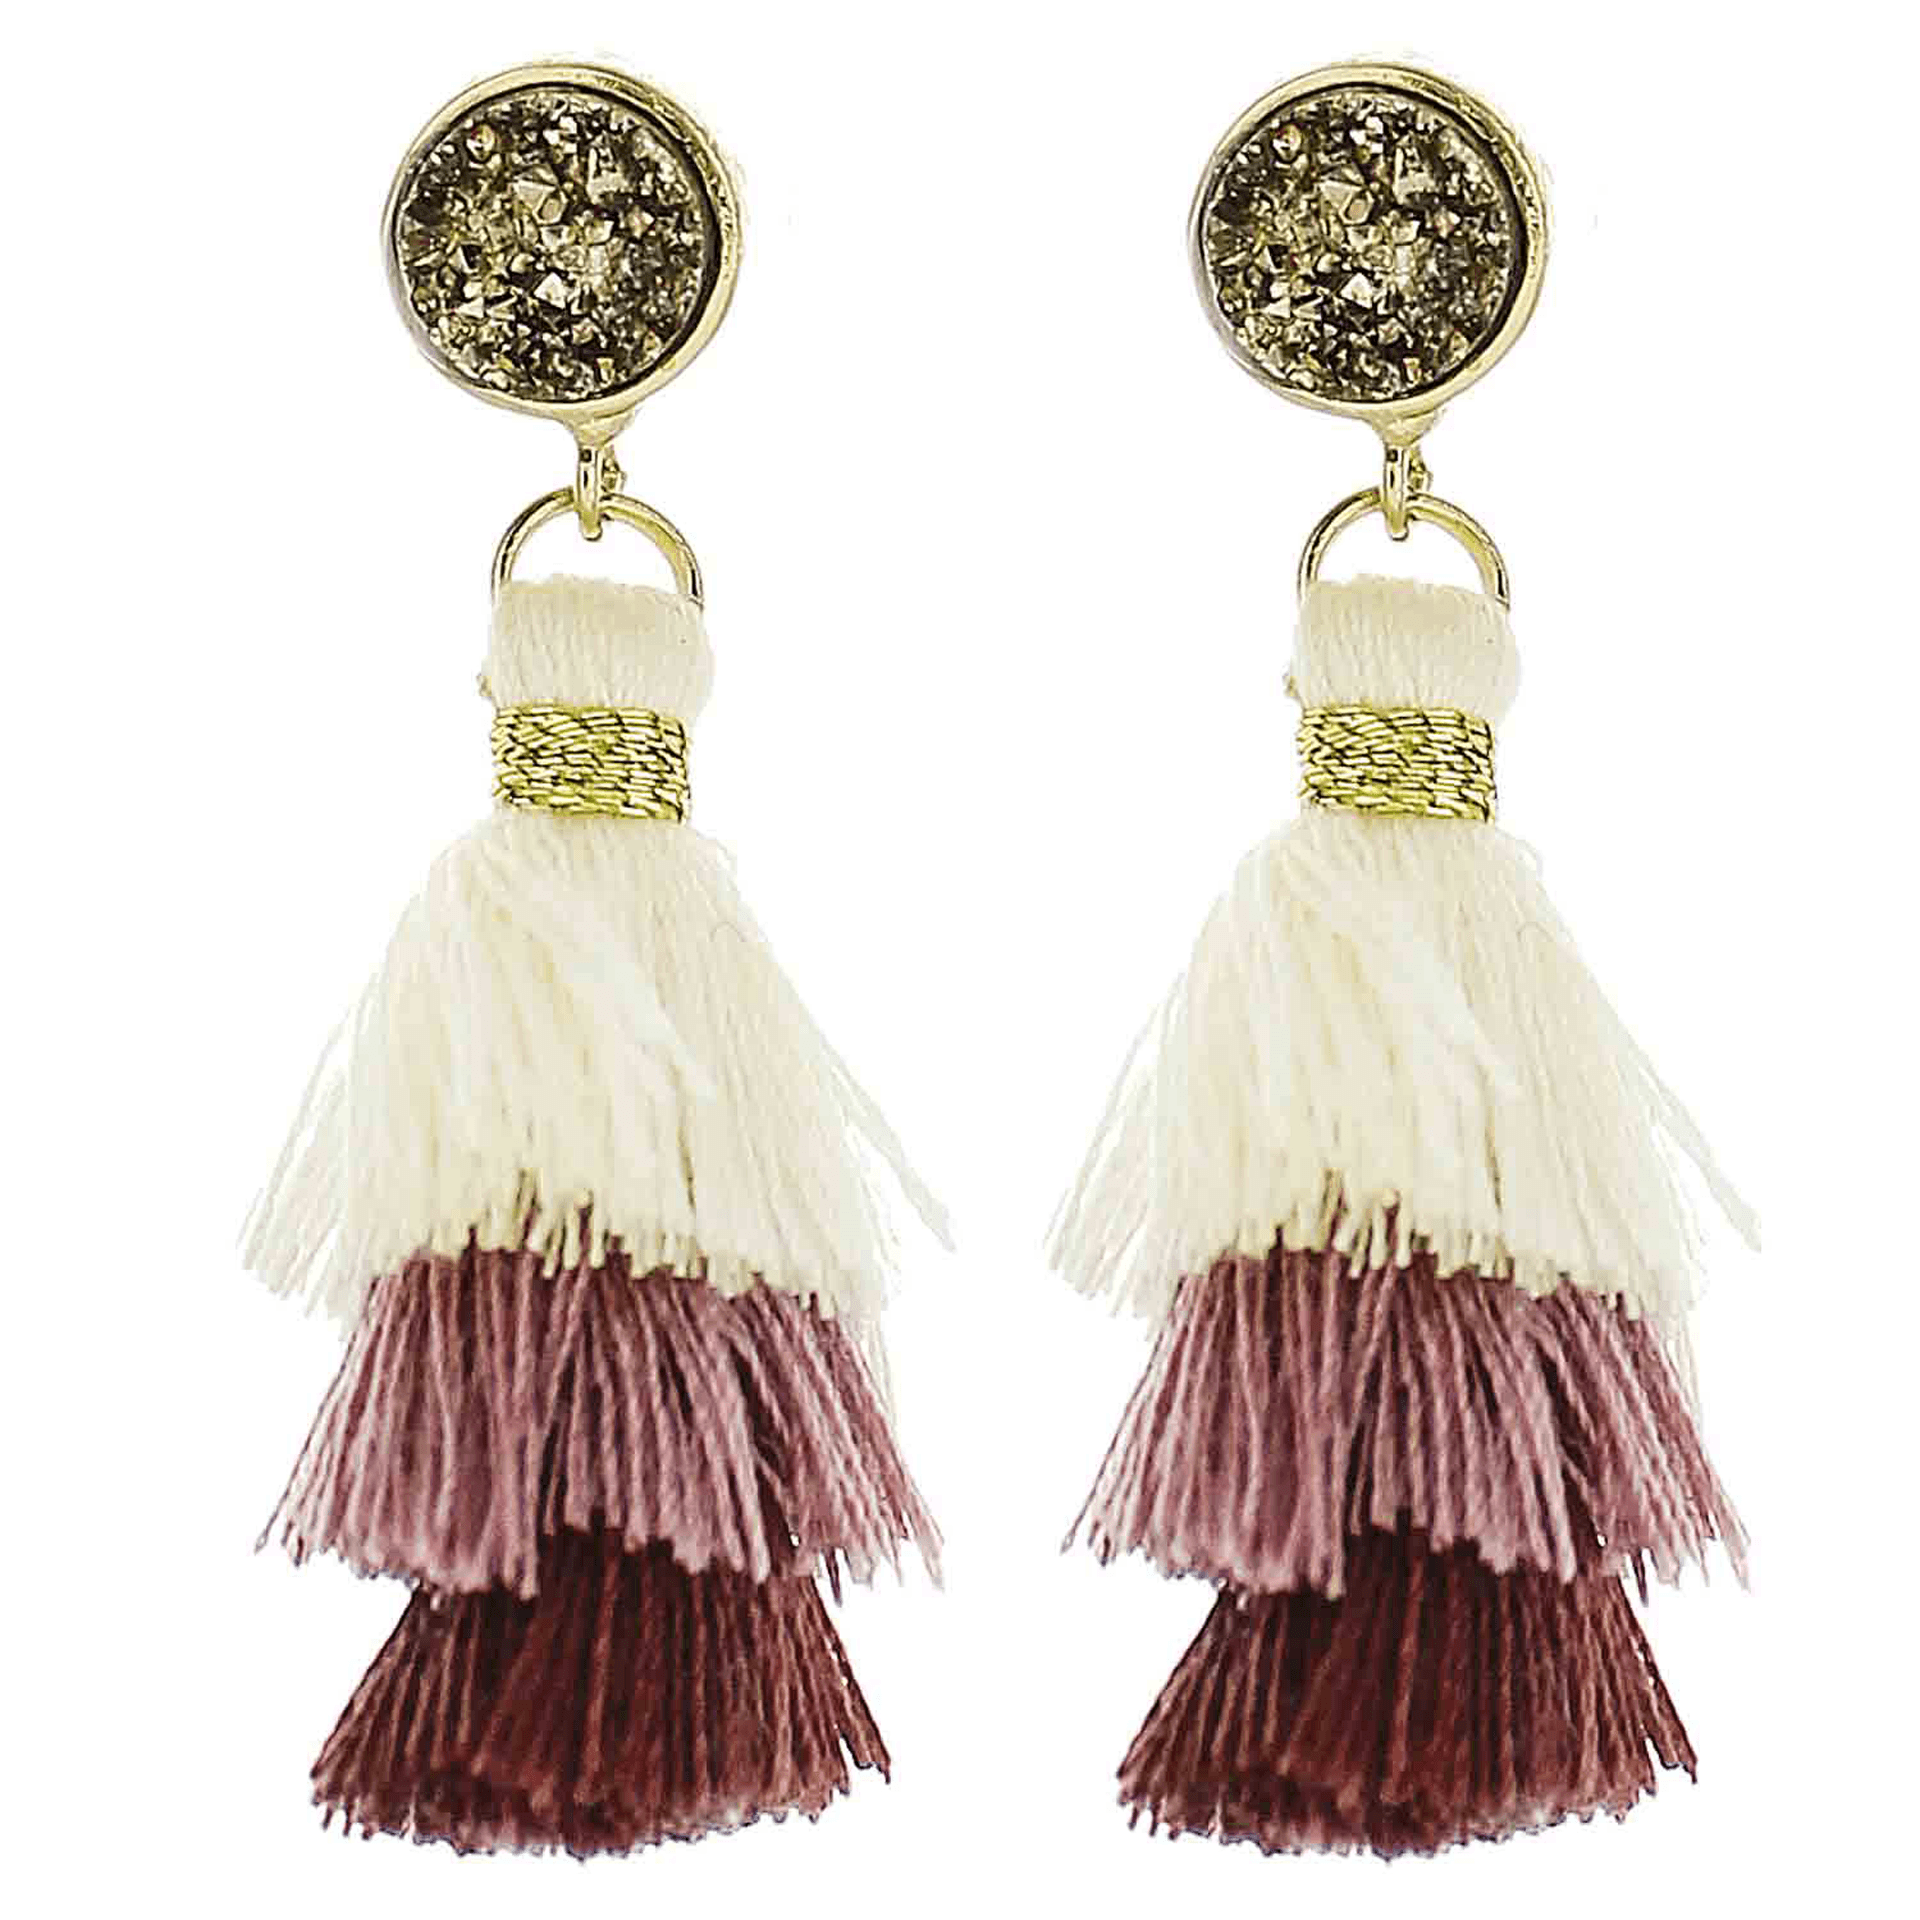 Little Girls Tassel Earrings